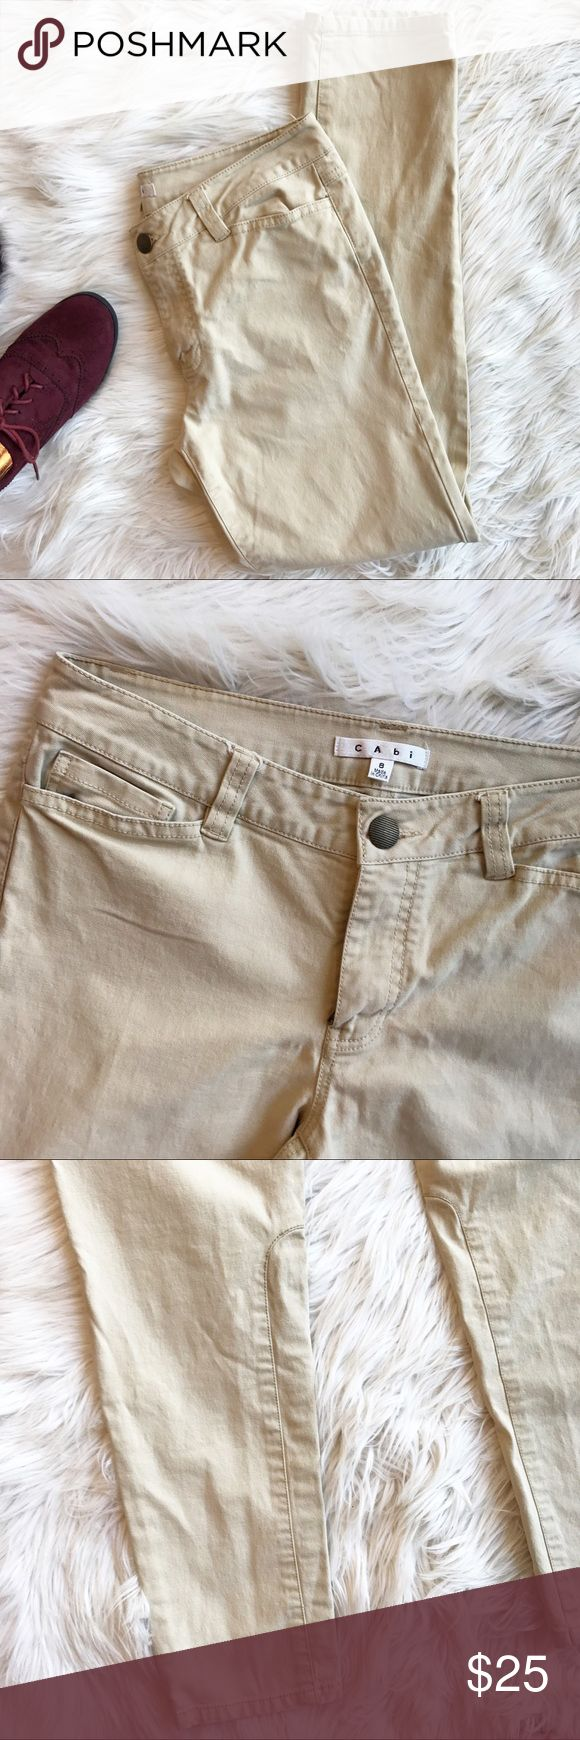 CAbi Khaki Skinny Pants Excellent condition CAbi Khaki Skinny Pants. These add a little edge to a boring office outfit with the detail at the bottom! Size 8. No flaws. Measurements to come. CAbi Pants Skinny